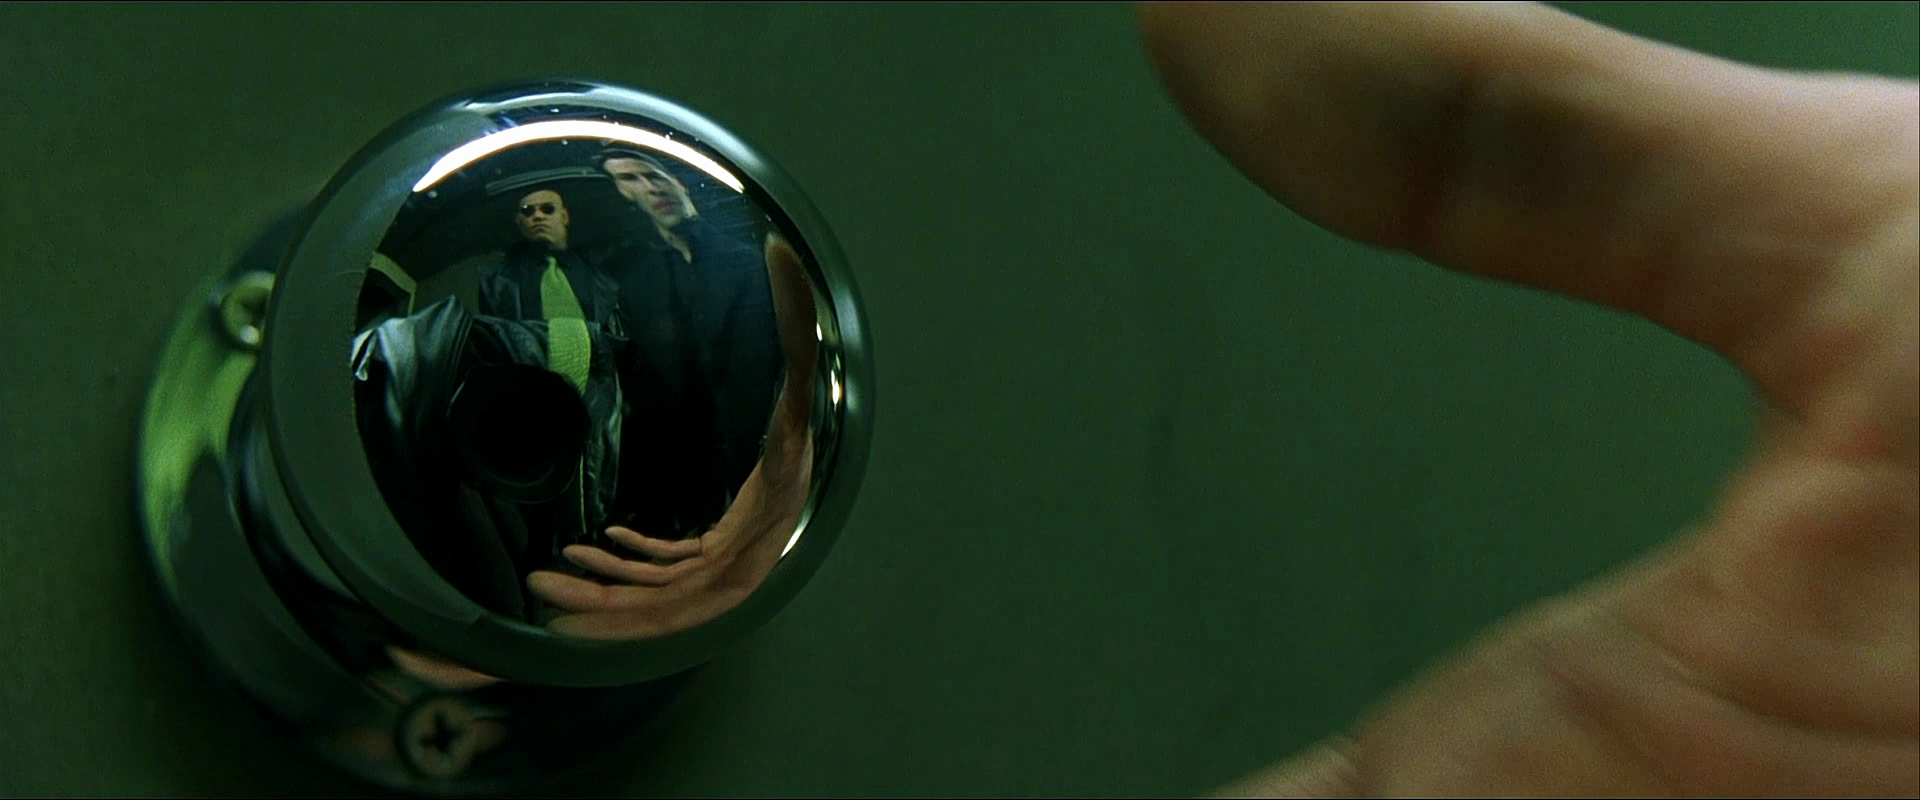 7. The Matrix